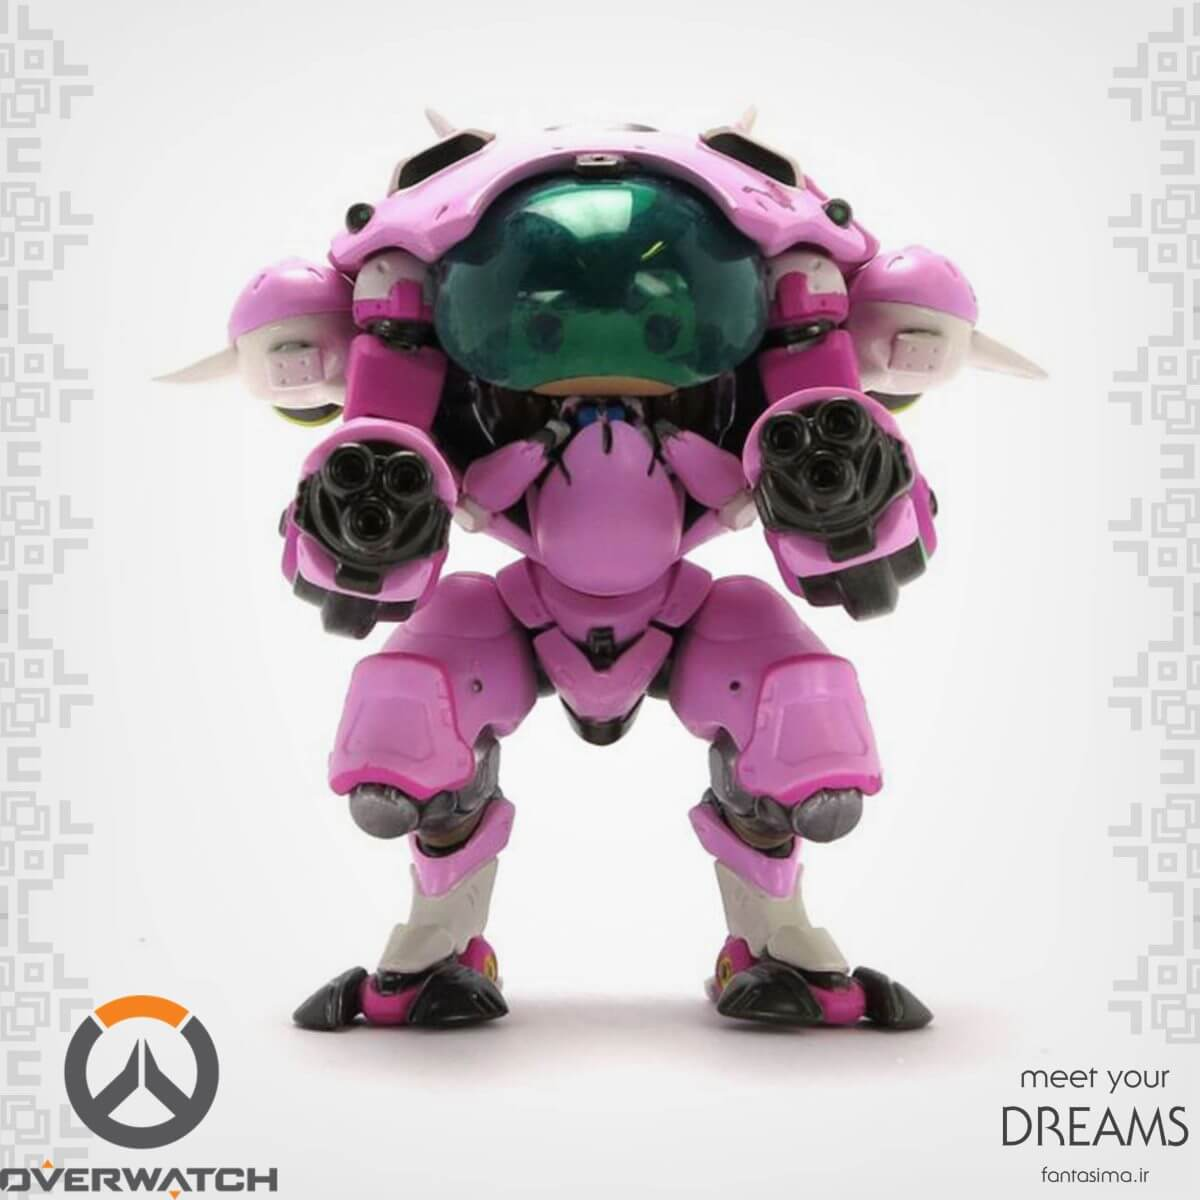 فانکوپاپ D.VA with meka